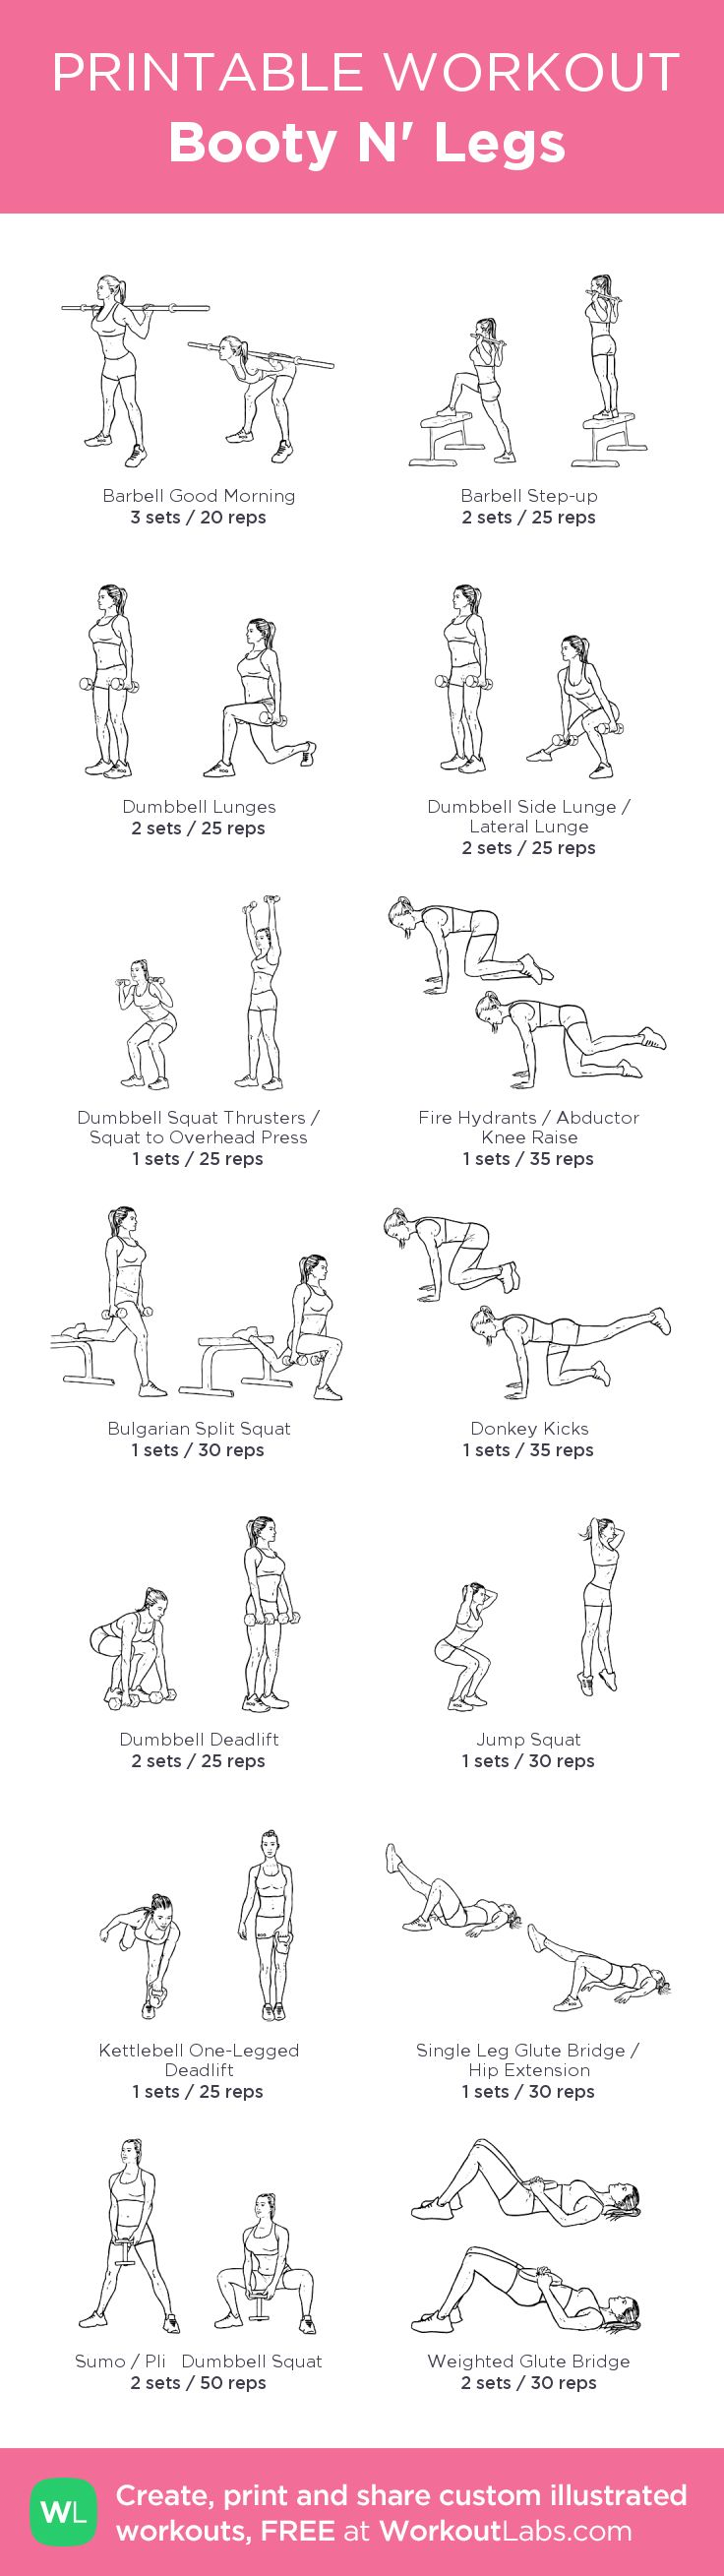 Booty N' Legs:my visual workout created at WorkoutLabs.com • Click through to customize and download as a FREE PDF! #customworkout